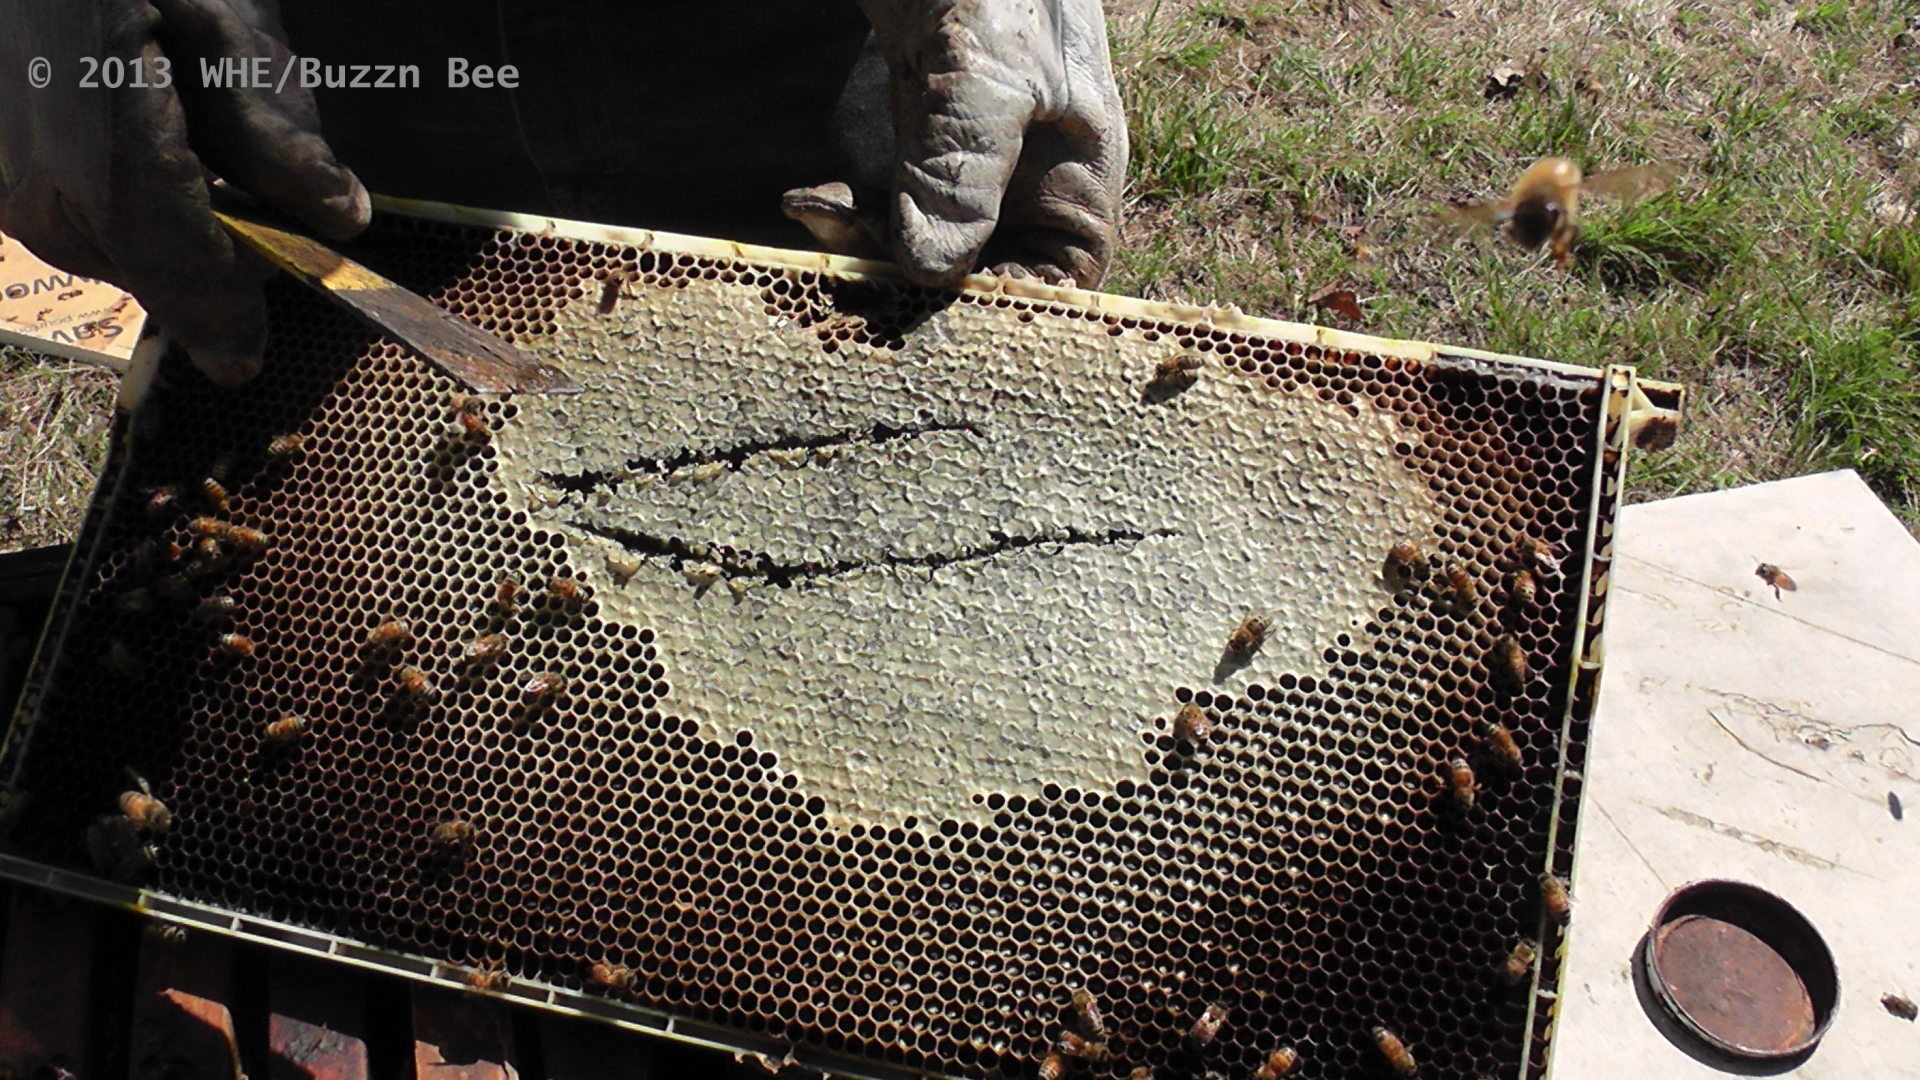 Cells of honeycomb sealed off for storage by bees